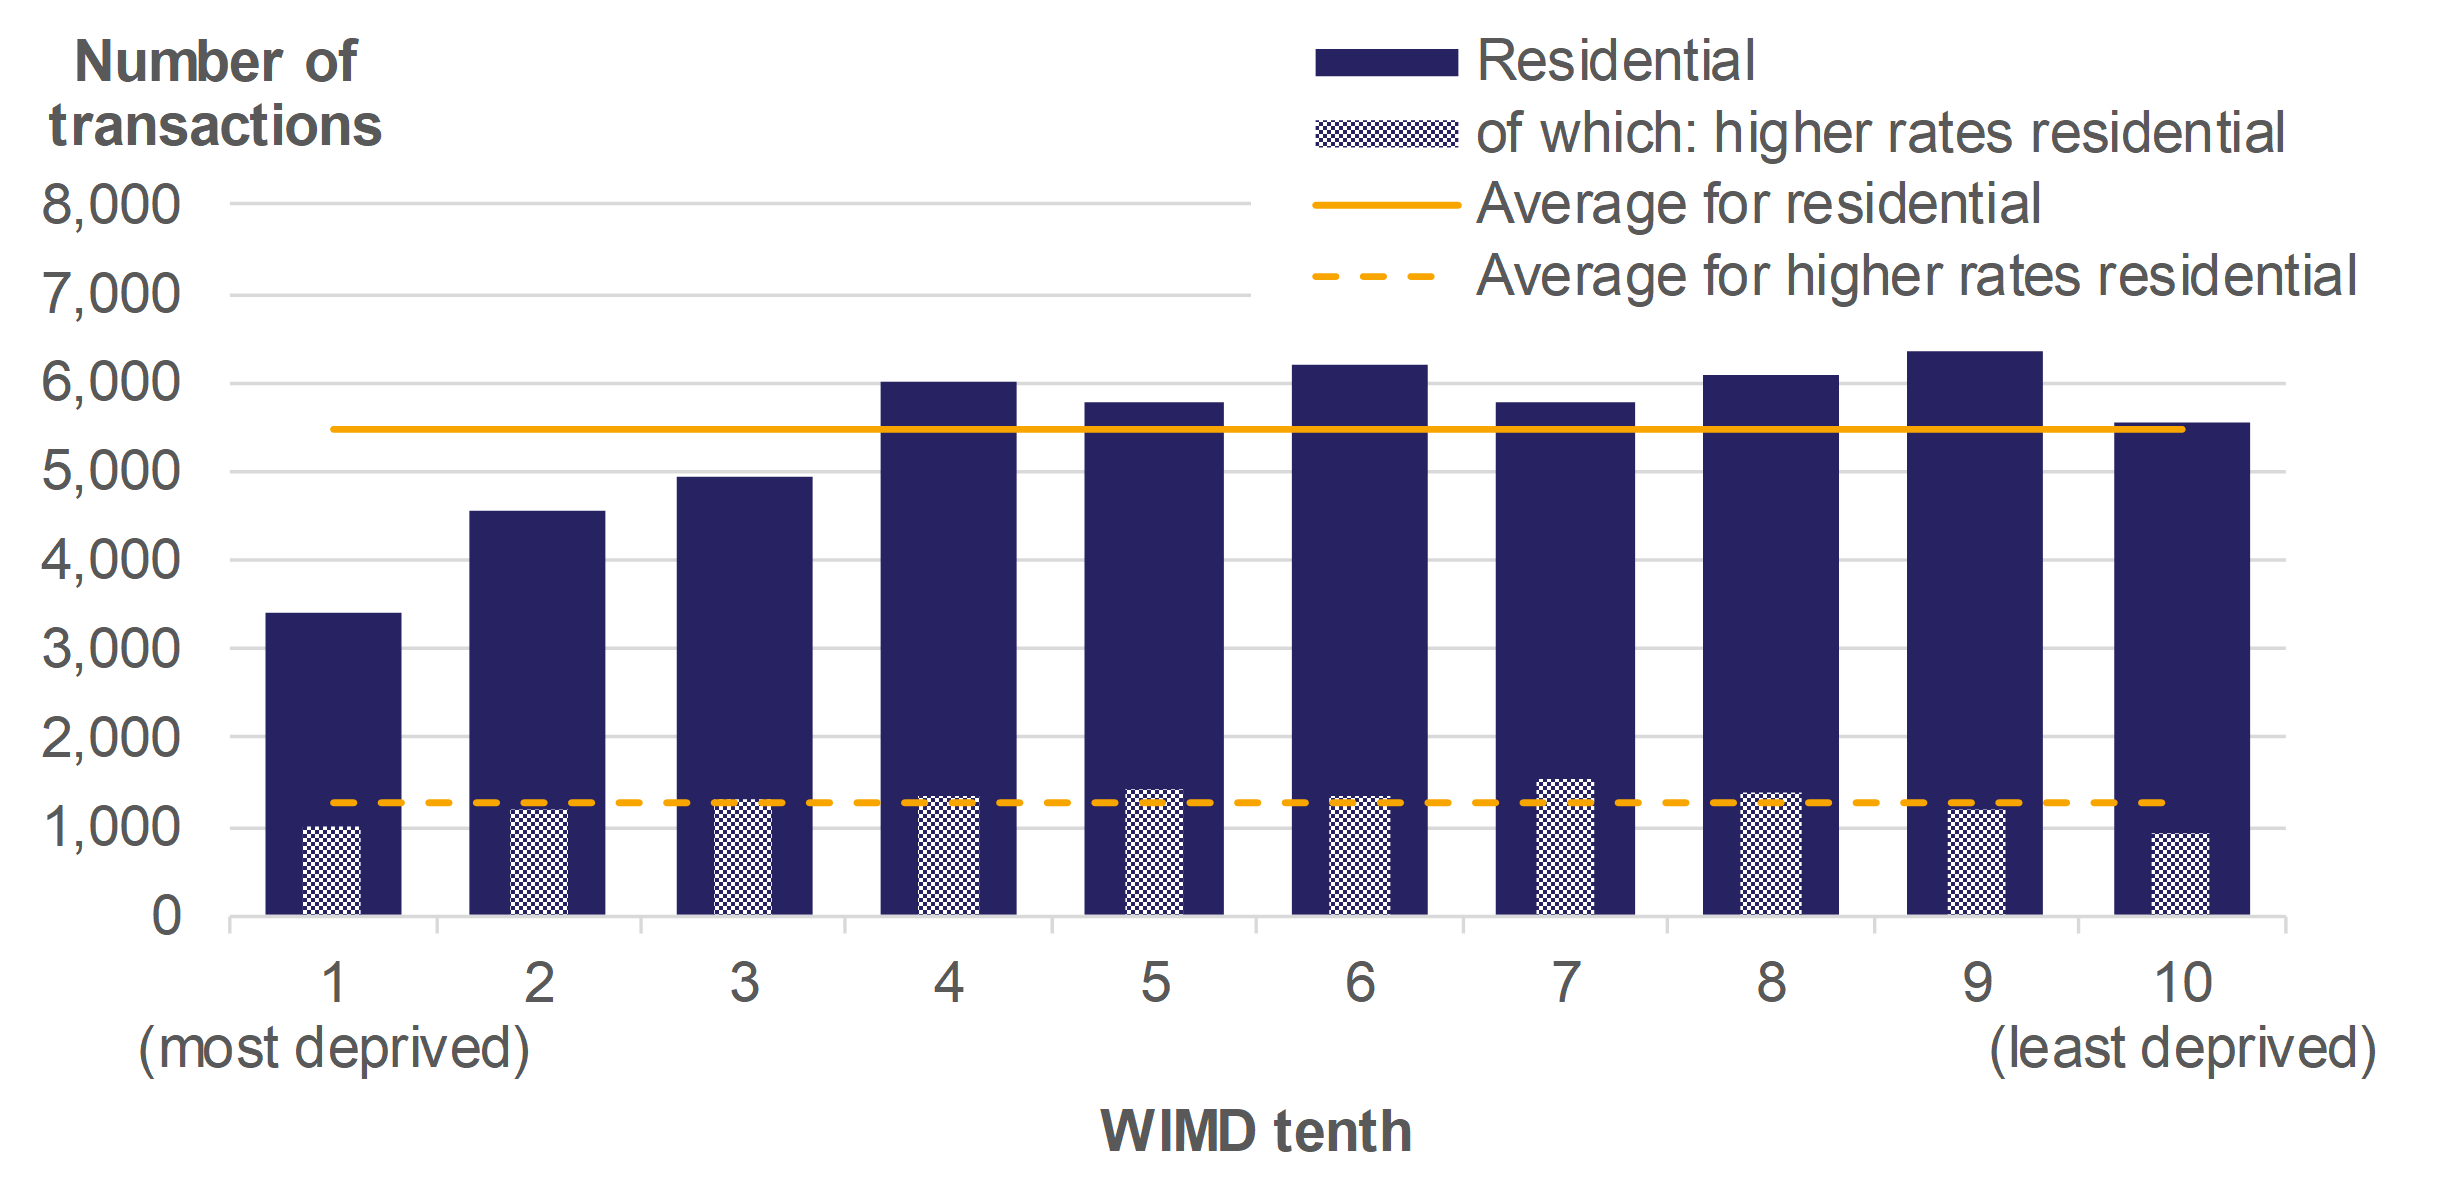 Figure 9.1 shows the number of residential transactions and at the higher rates, by WIMD tenths, for April 2018 to March 2019. Average values over all WIMD tenths are also presented.